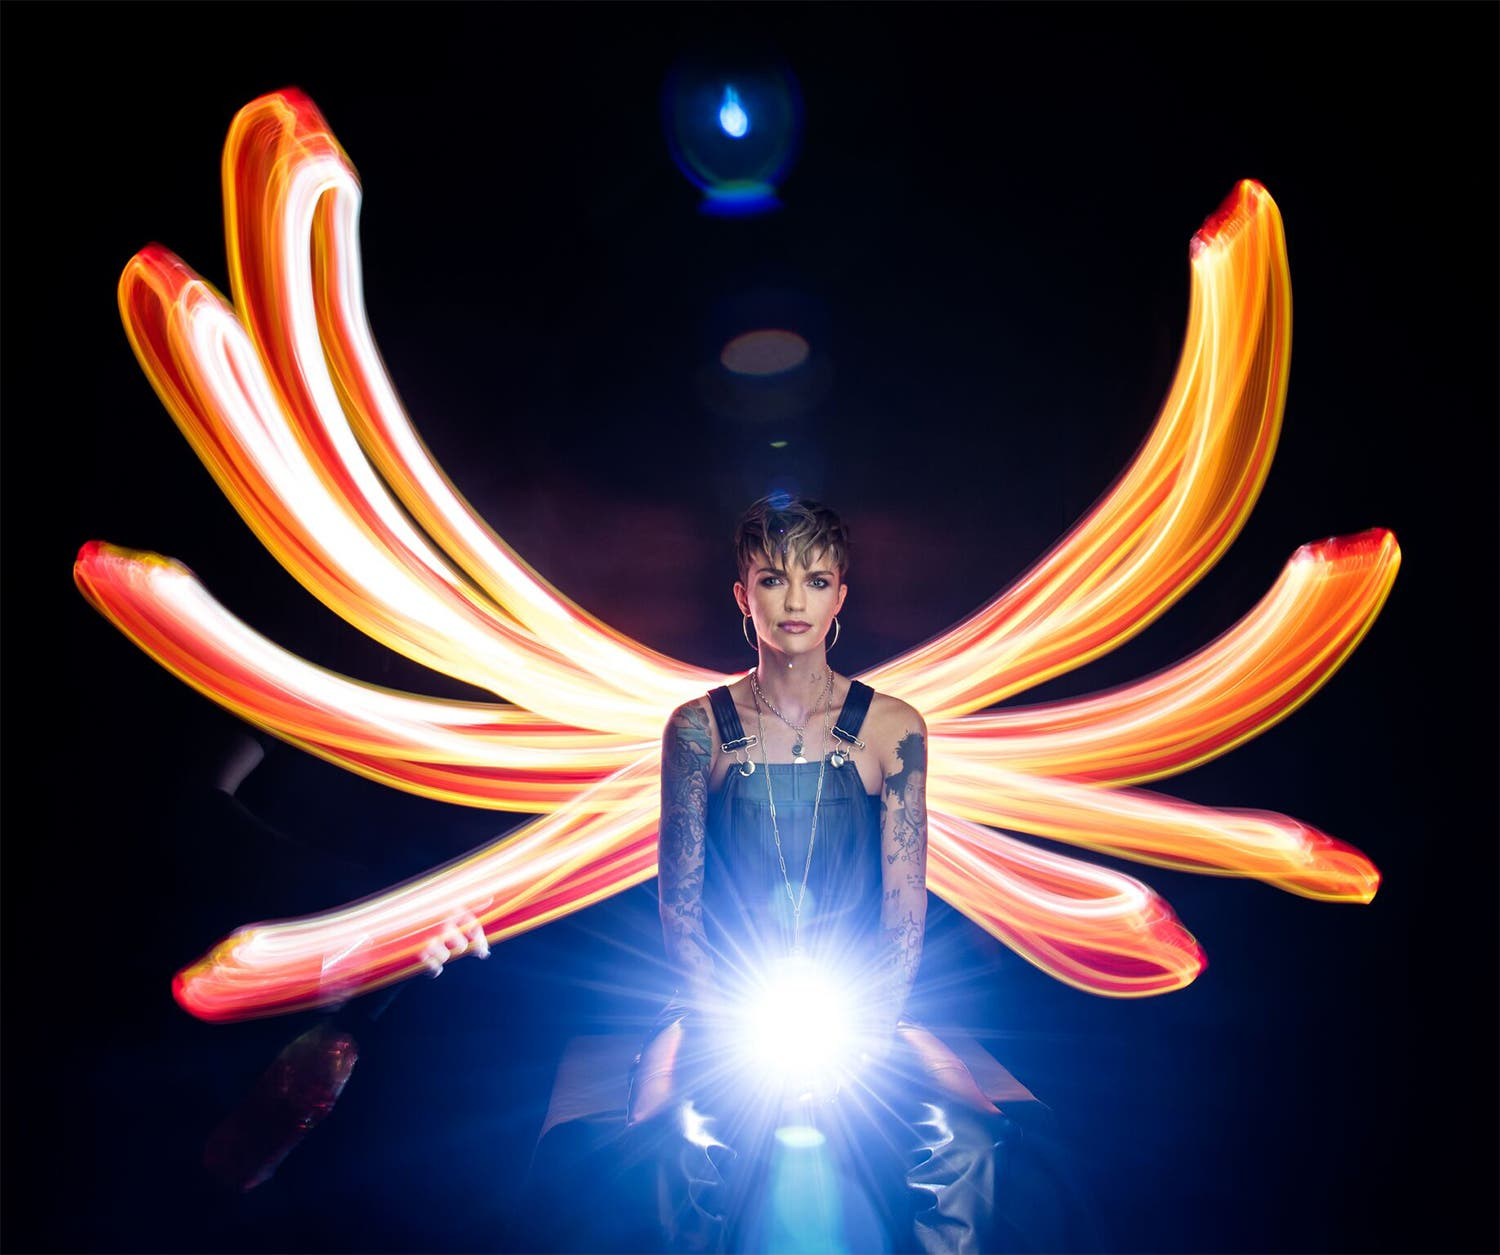 These Light Painting Portraits from Jason Page Are for iHeartRadio